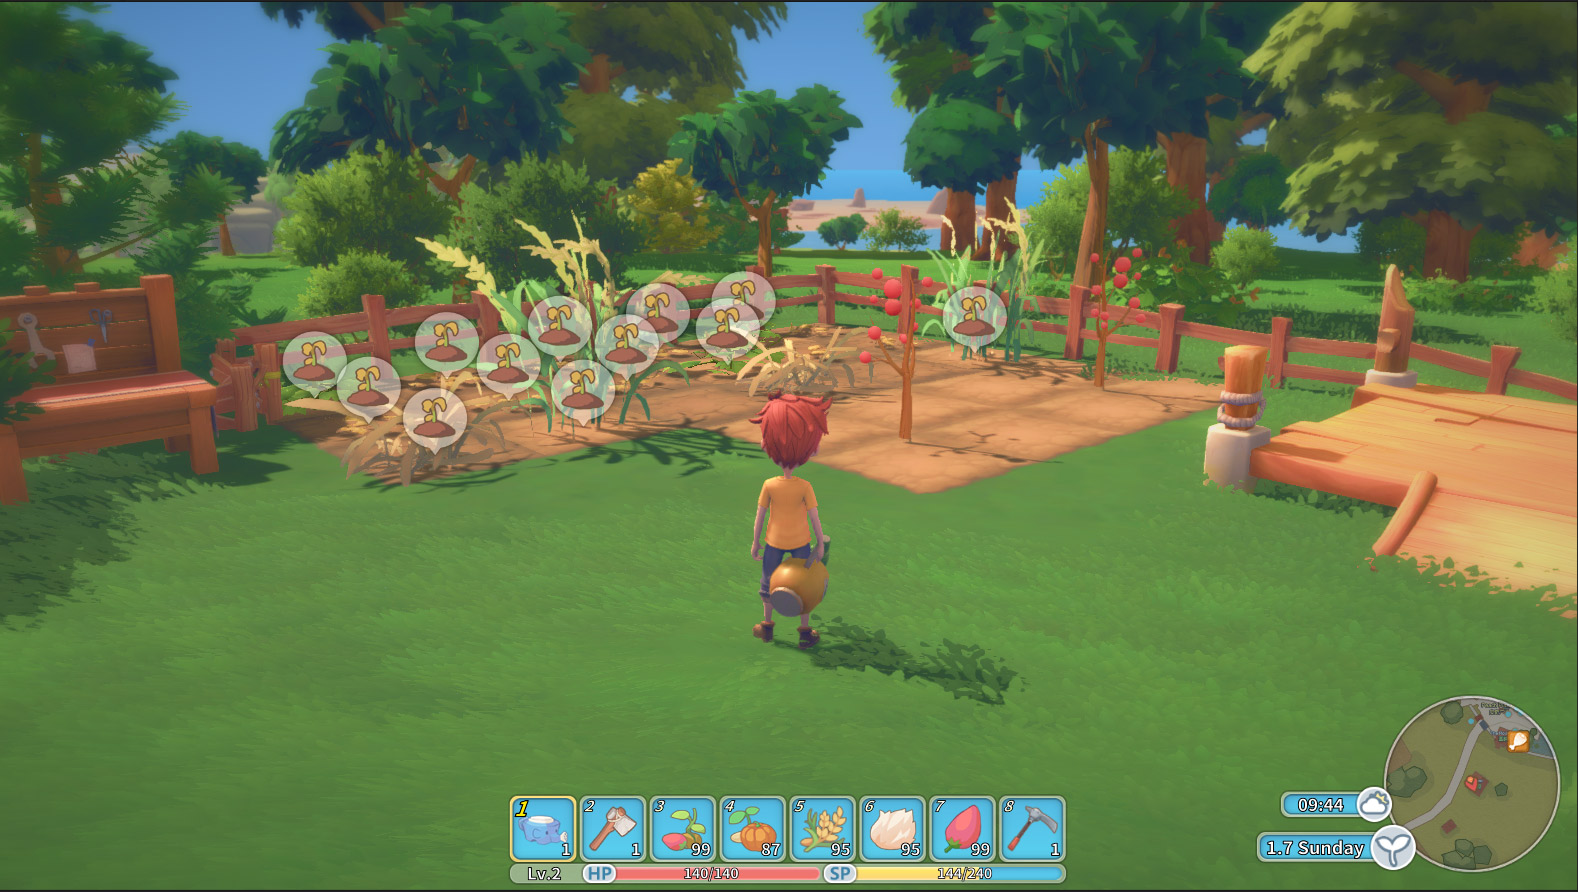 Farming - To be or not to be? - My Time At Portia by patheagames